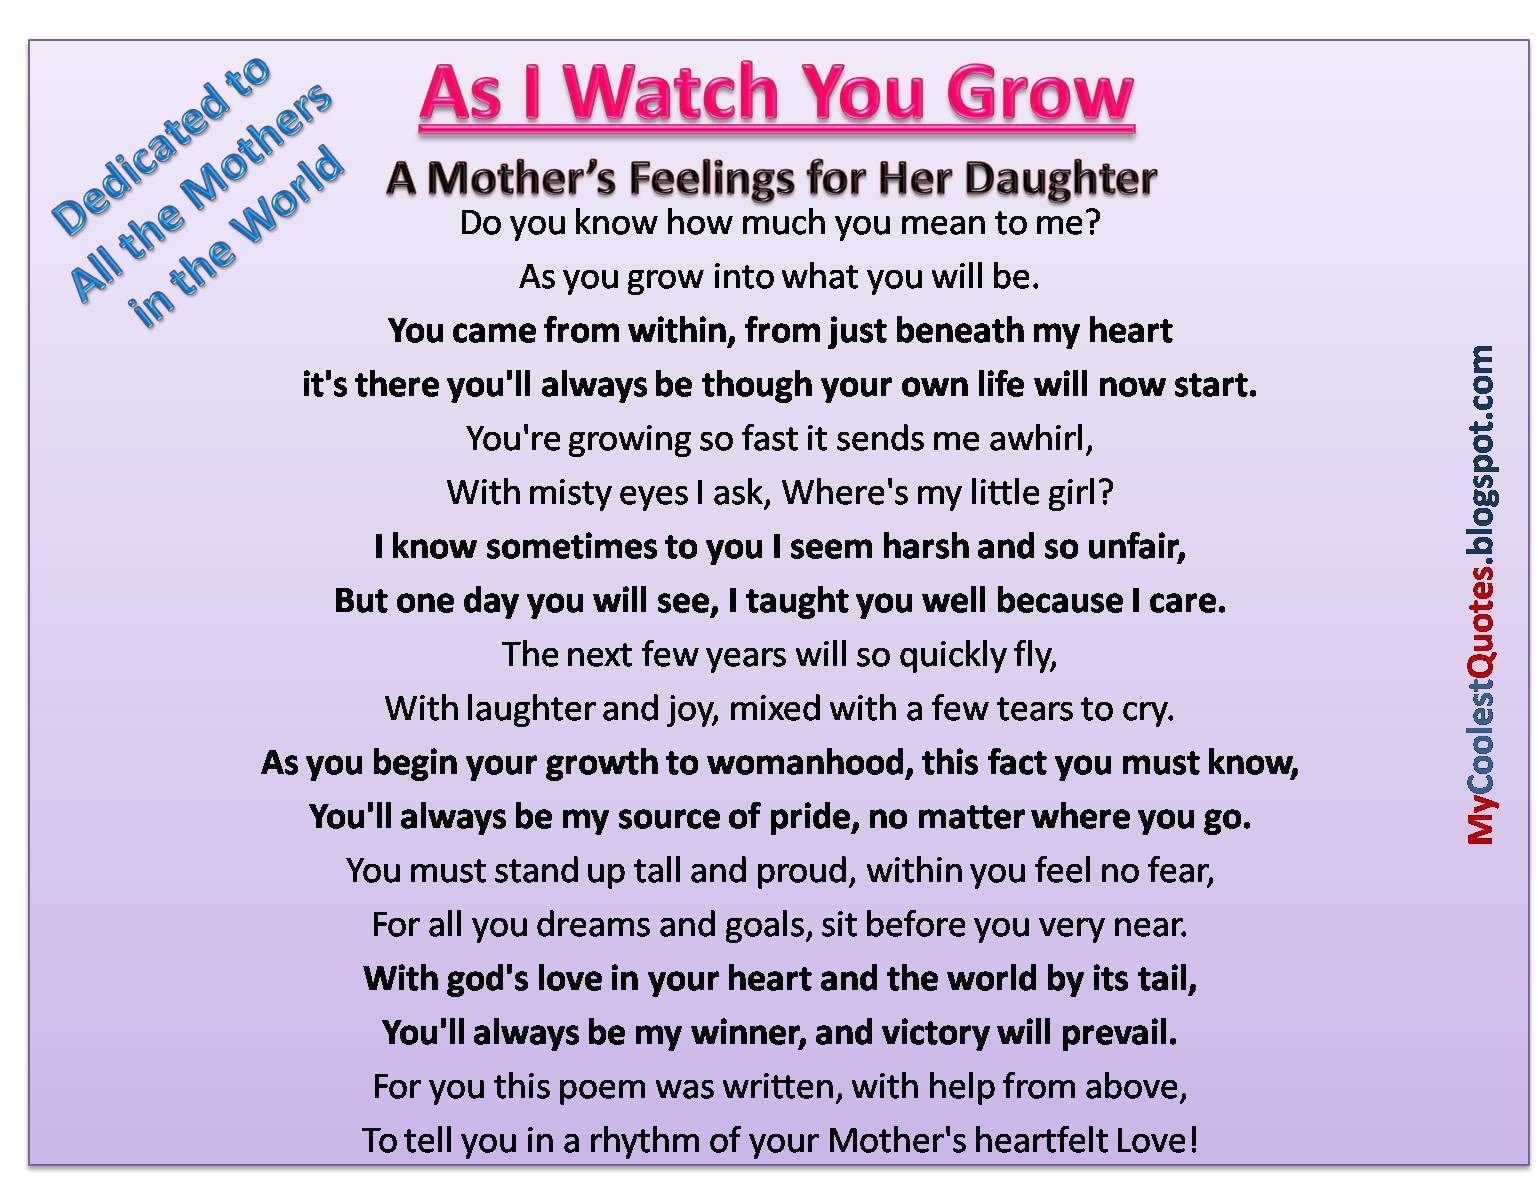 funny valentines day the daughter quotes for her mother motherdaughterpicturequotesdishwasherdaughtertomotherquotes